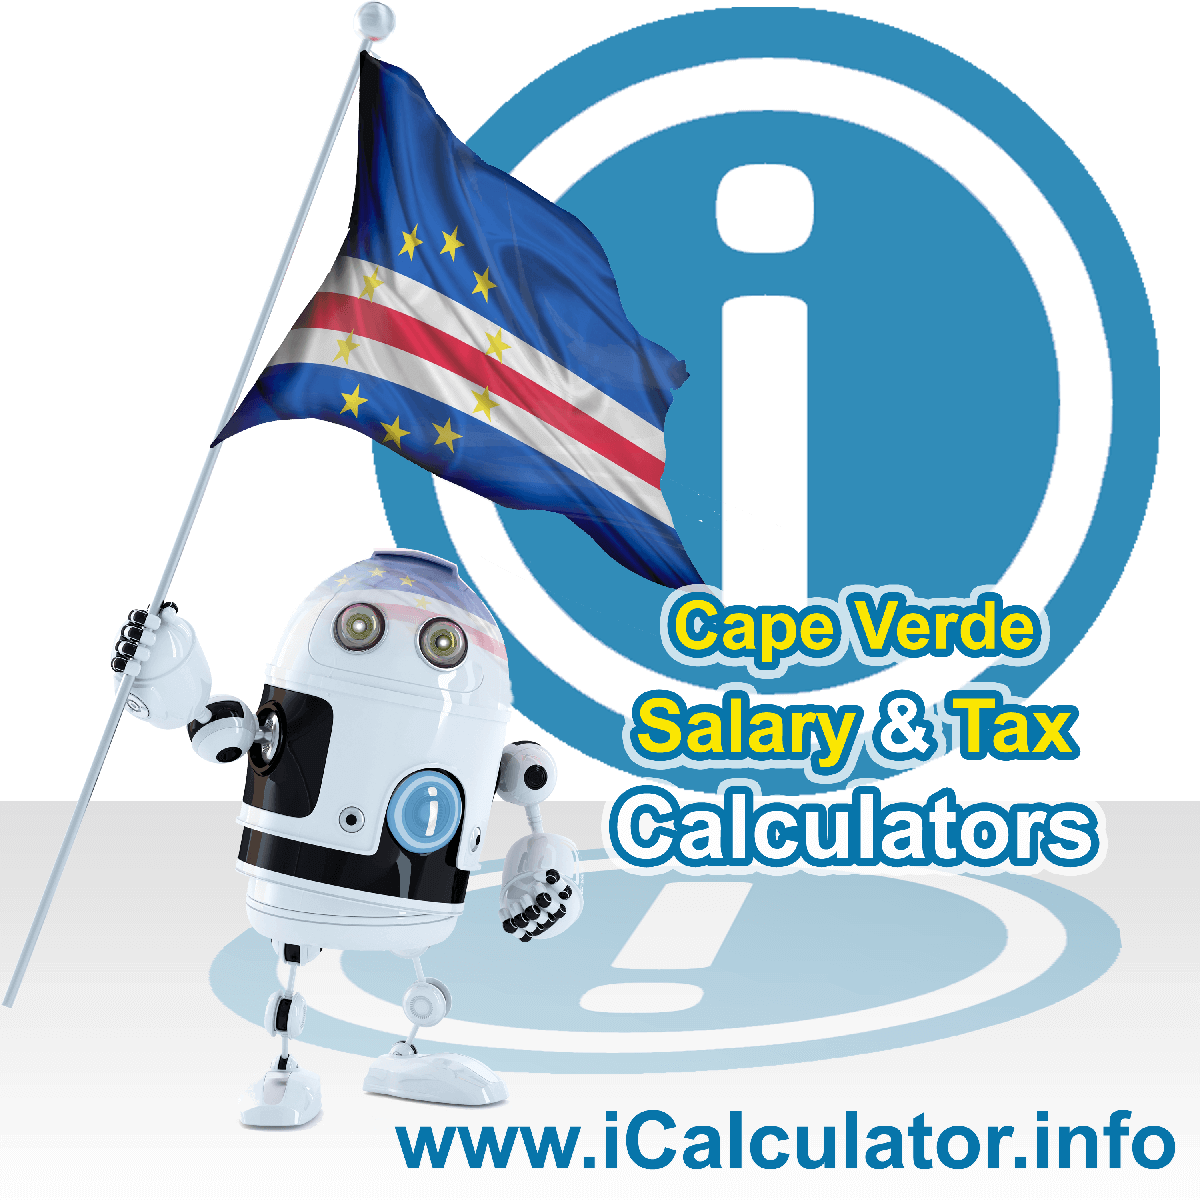 Cape Verde Wage Calculator. This image shows the Cape Verde flag and information relating to the tax formula for the Cape Verde Tax Calculator